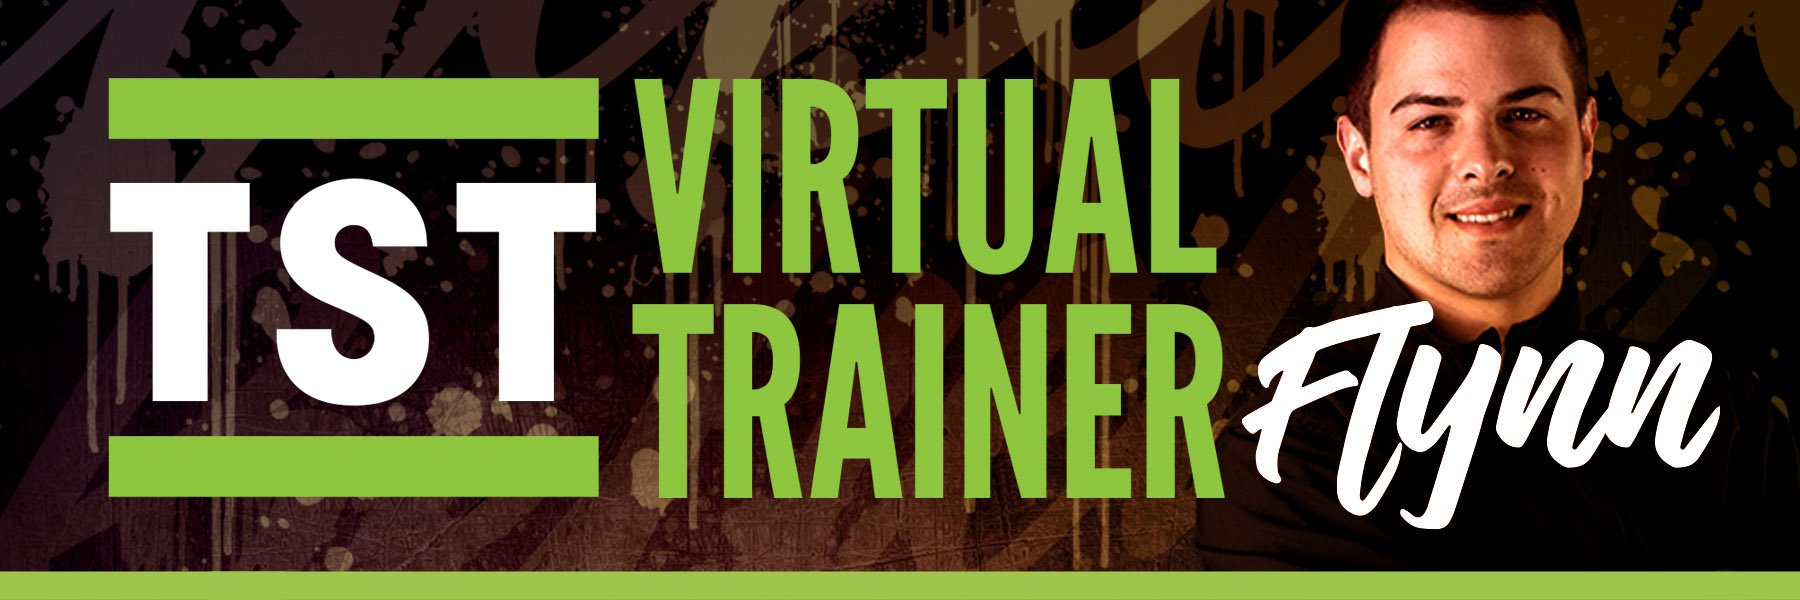 Virtual Trainer Workouts with Flynn